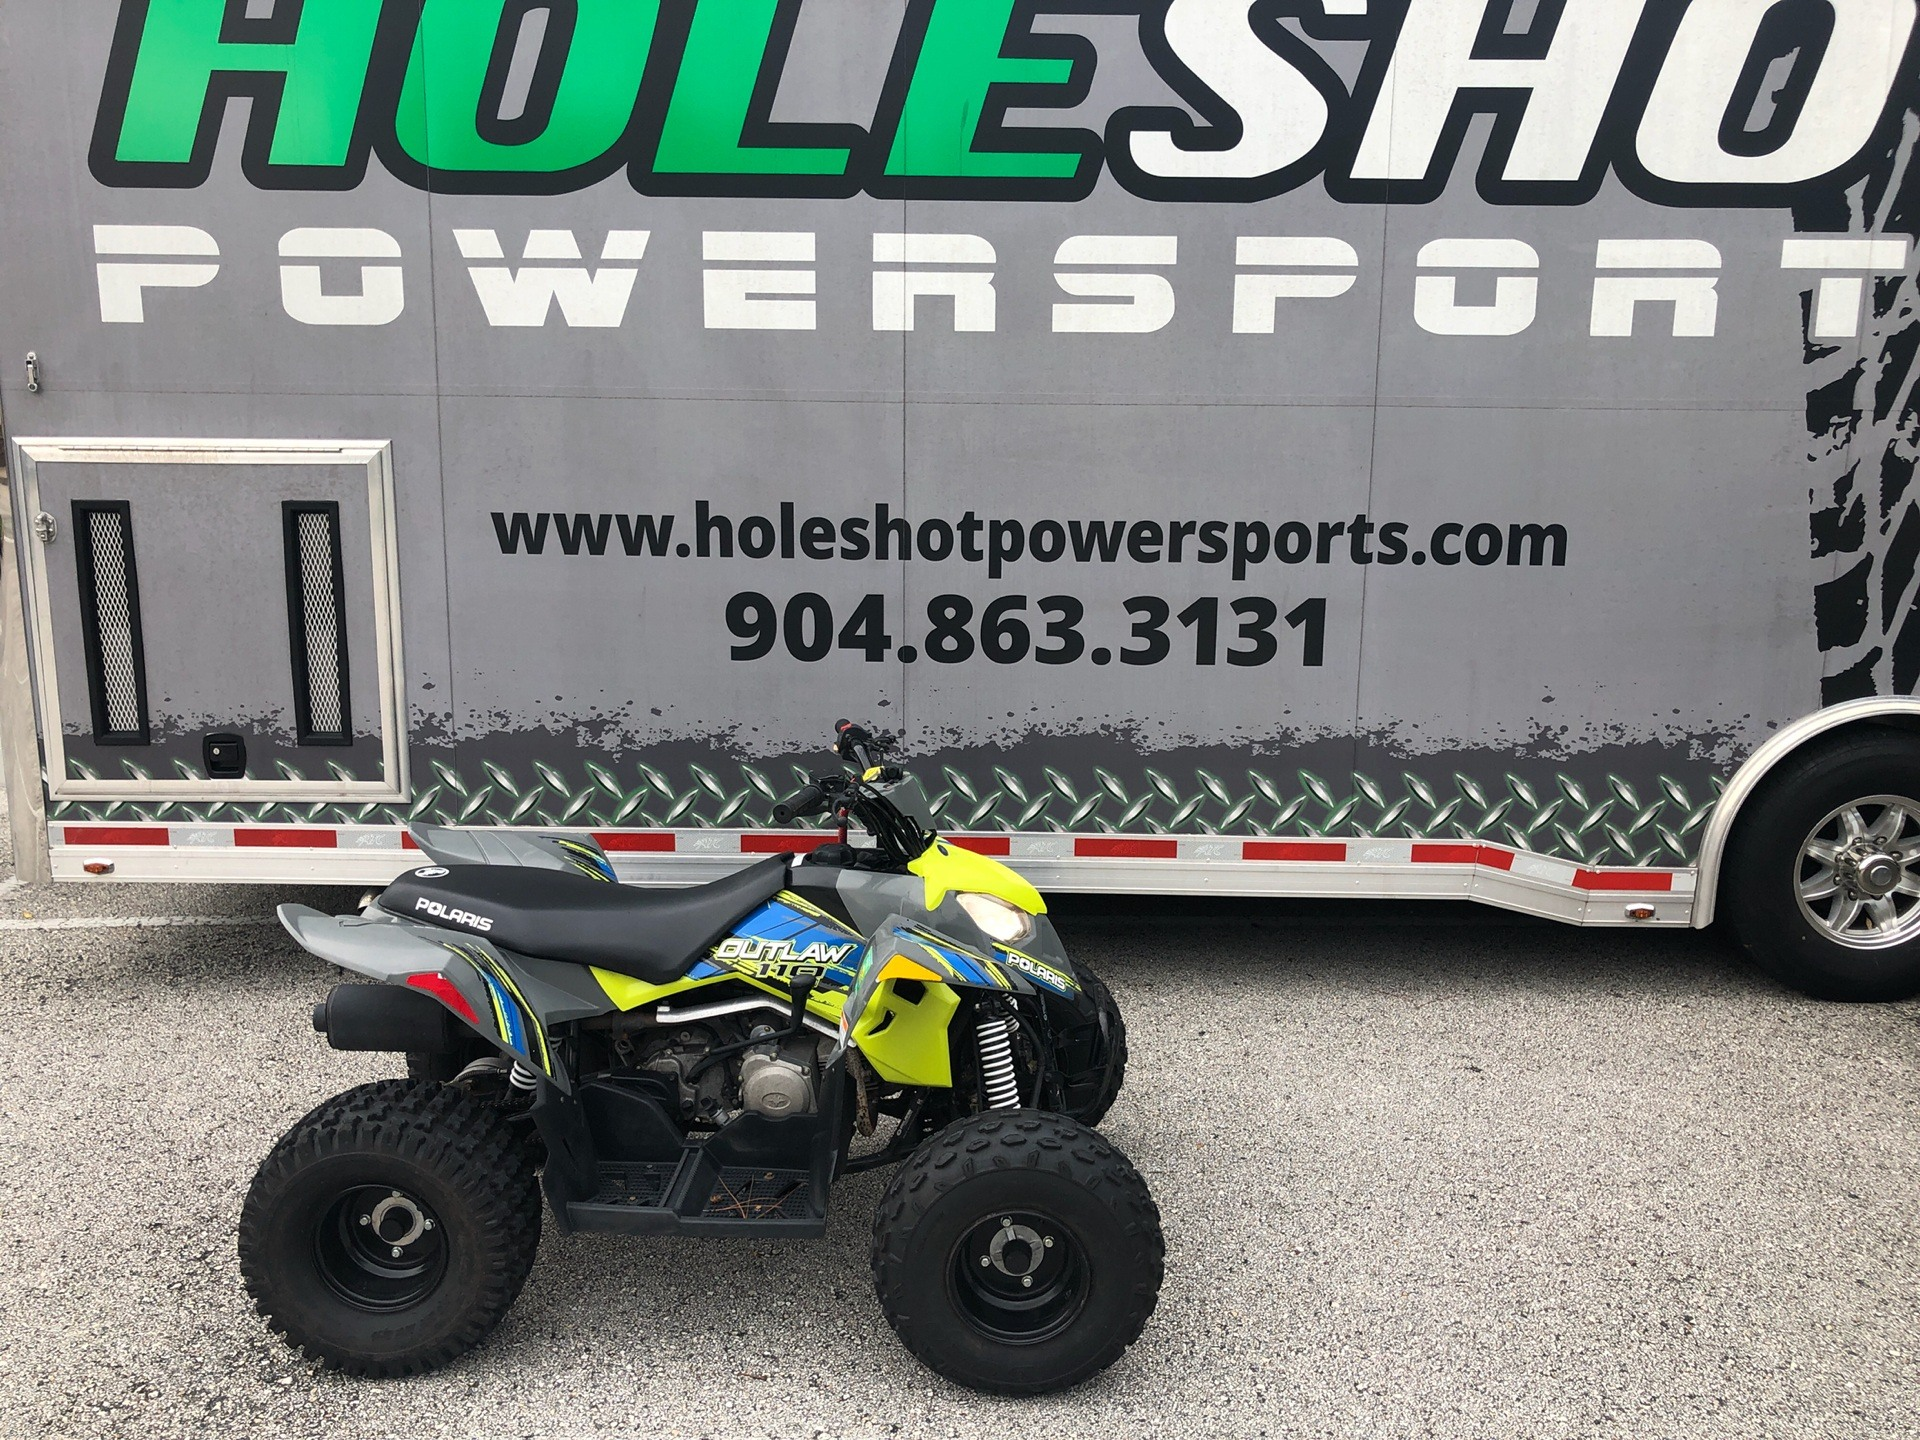 2020 Polaris Outlaw 110 in Fleming Island, Florida - Photo 1